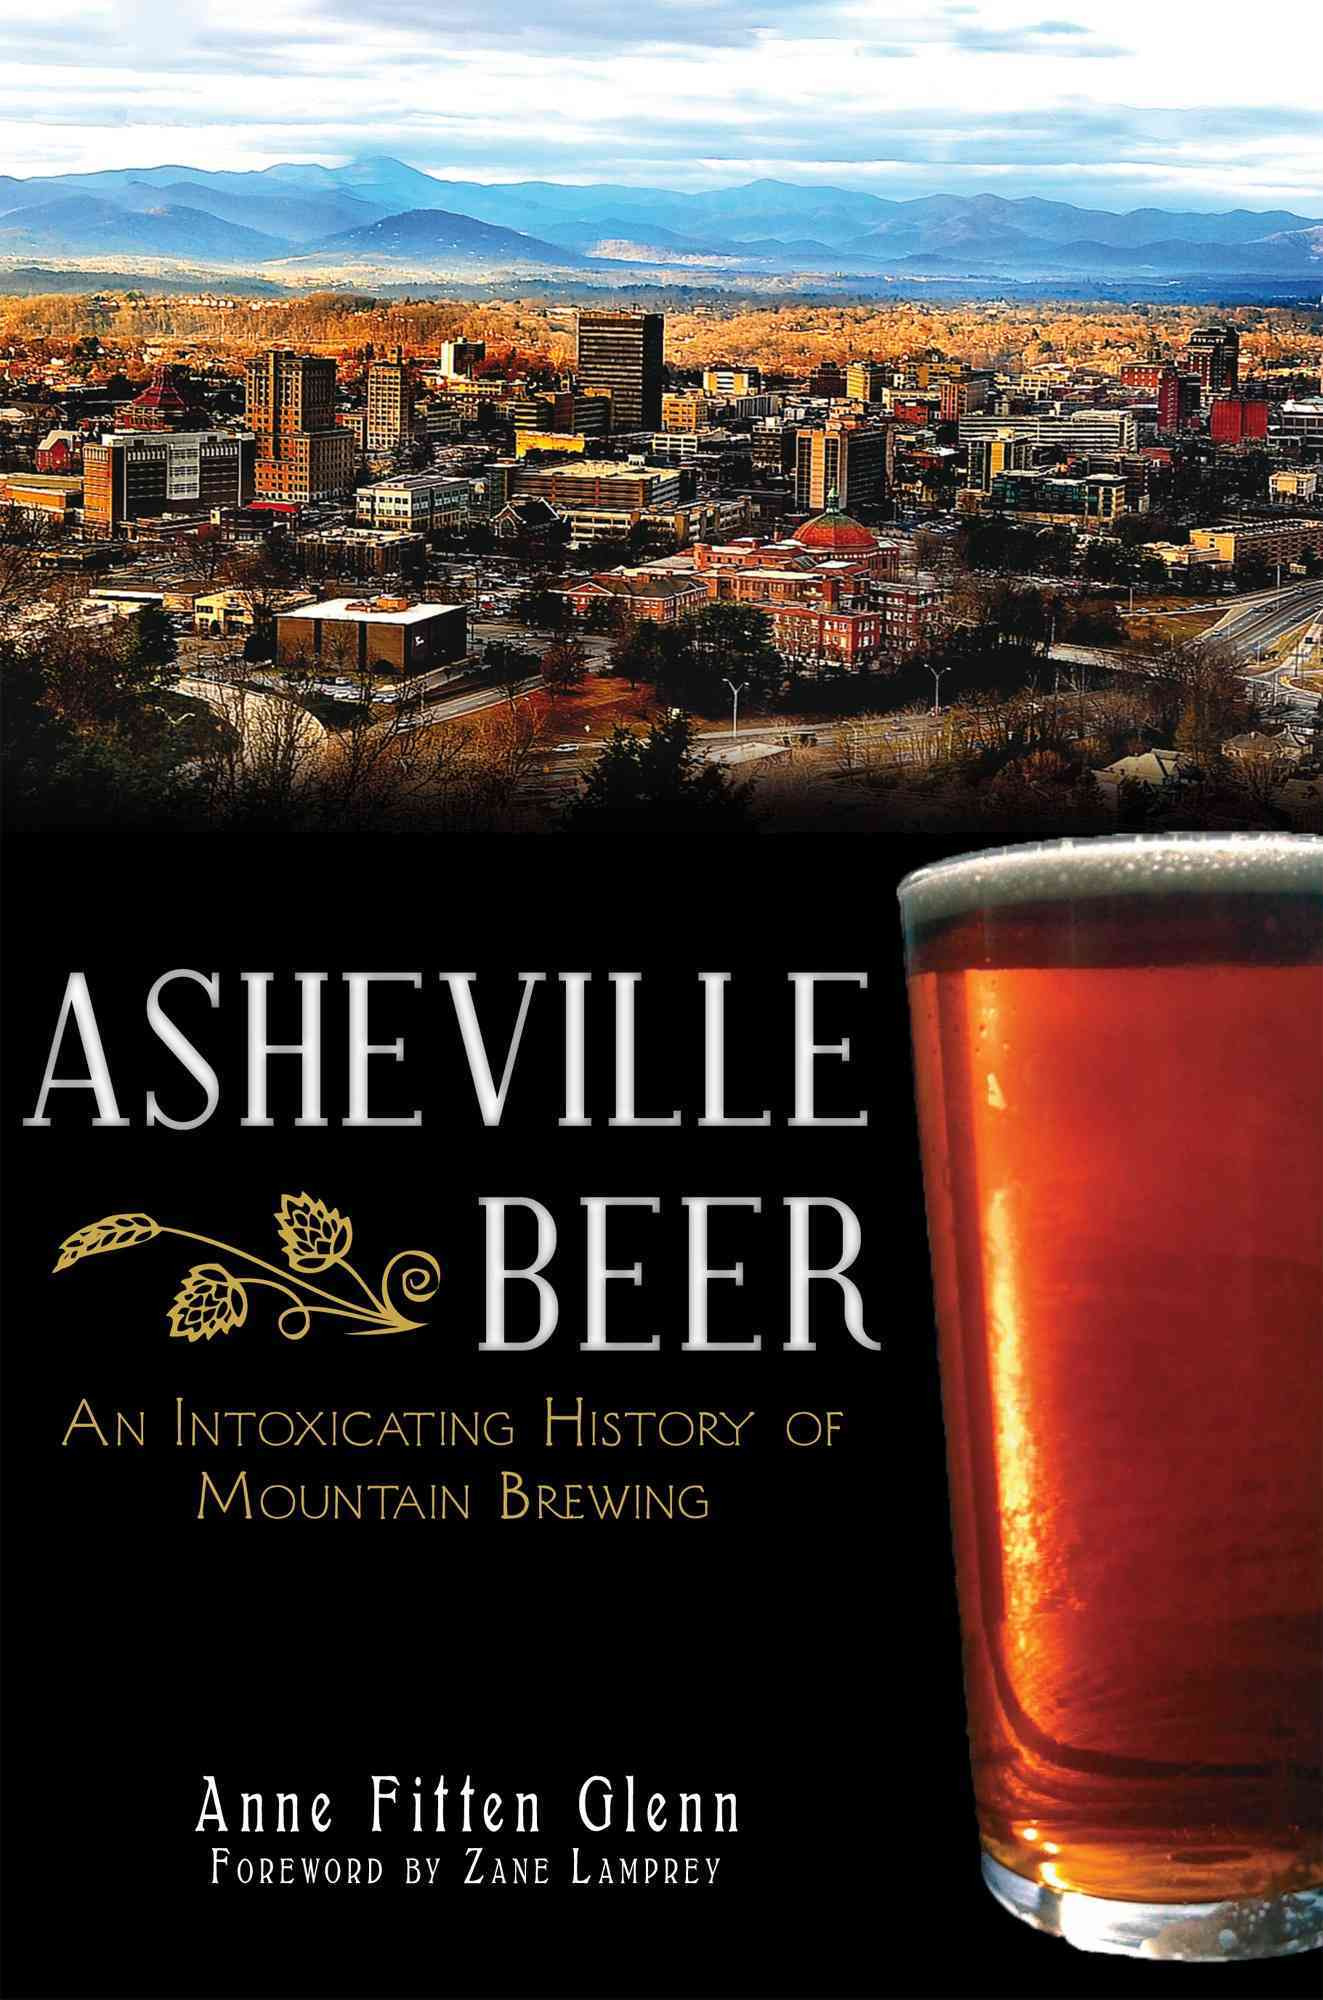 Asheville Beer: An Intoxicating History of Mountain Brewing (Paperback)